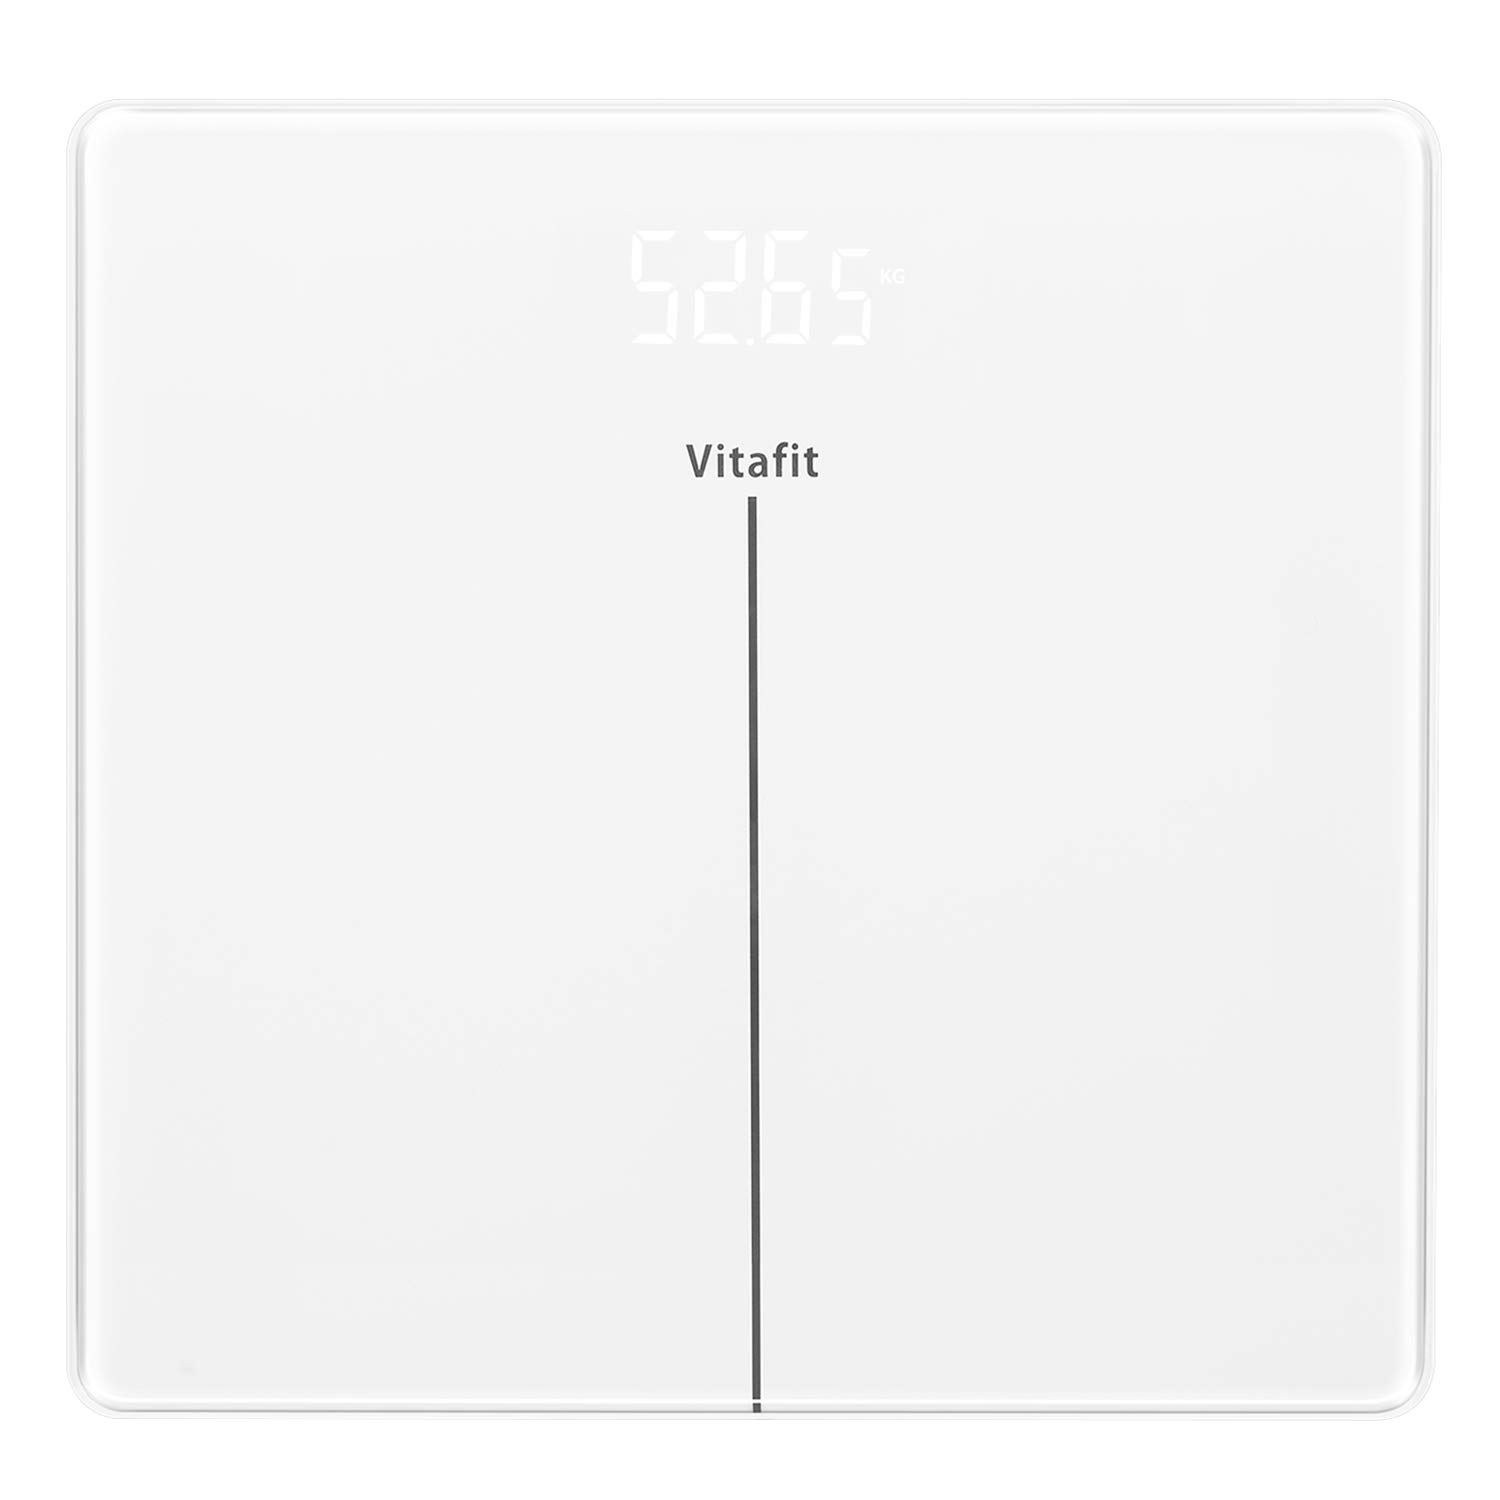 Vitafit Digital Body Weight Bathroom Scales Weighing Scales with Step-On